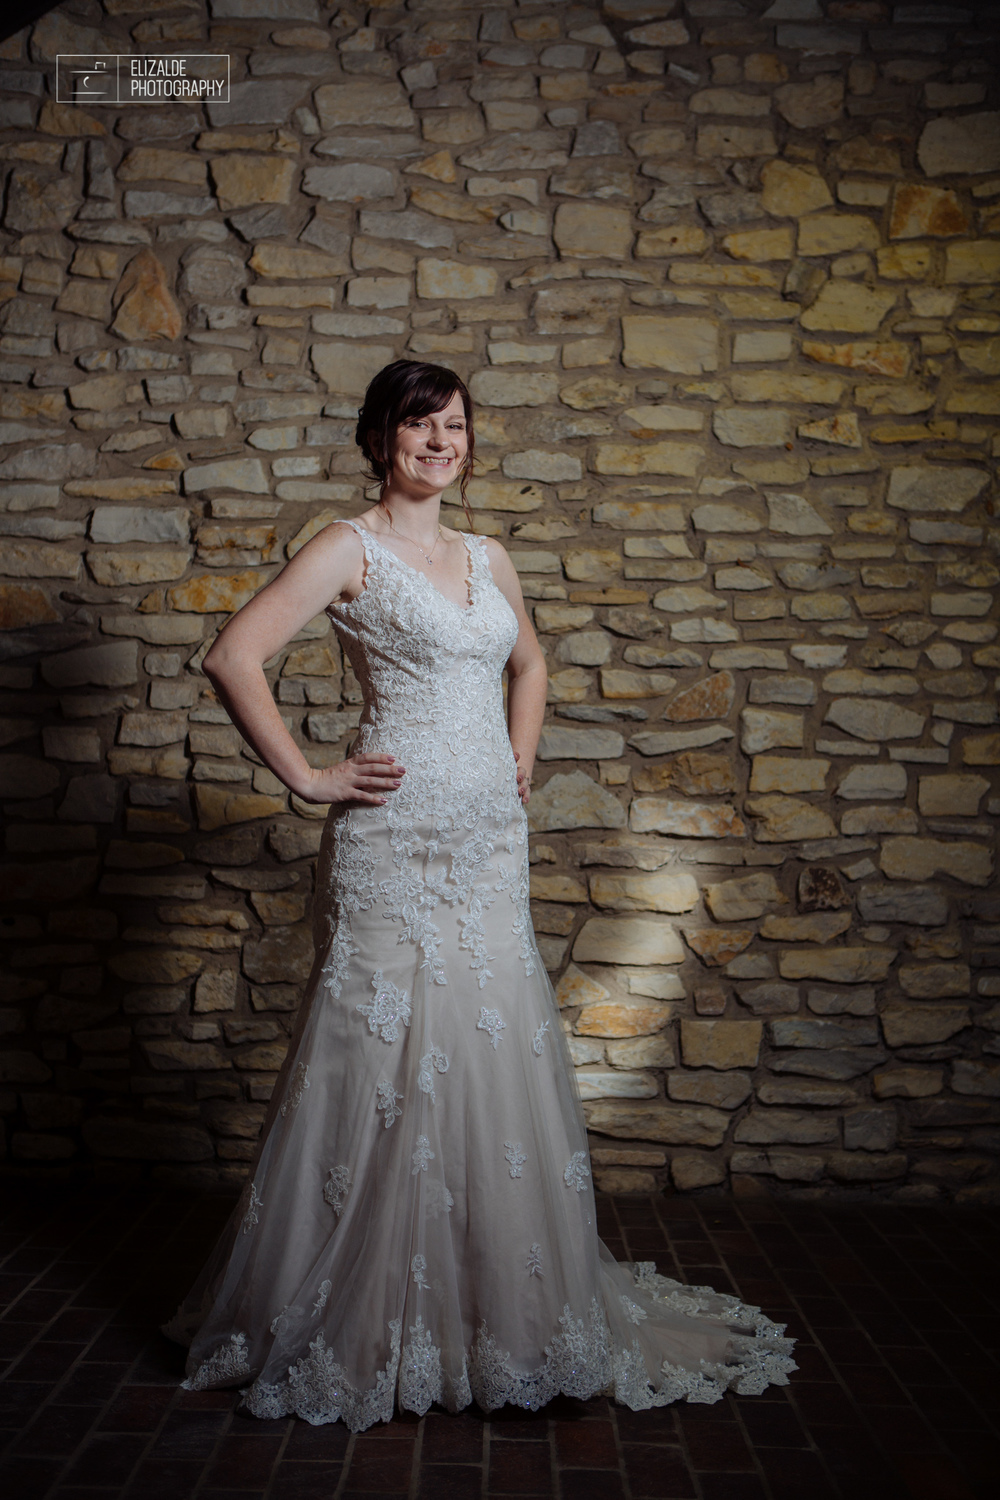 Kelly_Bridals_Omni_DFW_wedding_blog-4.jpg